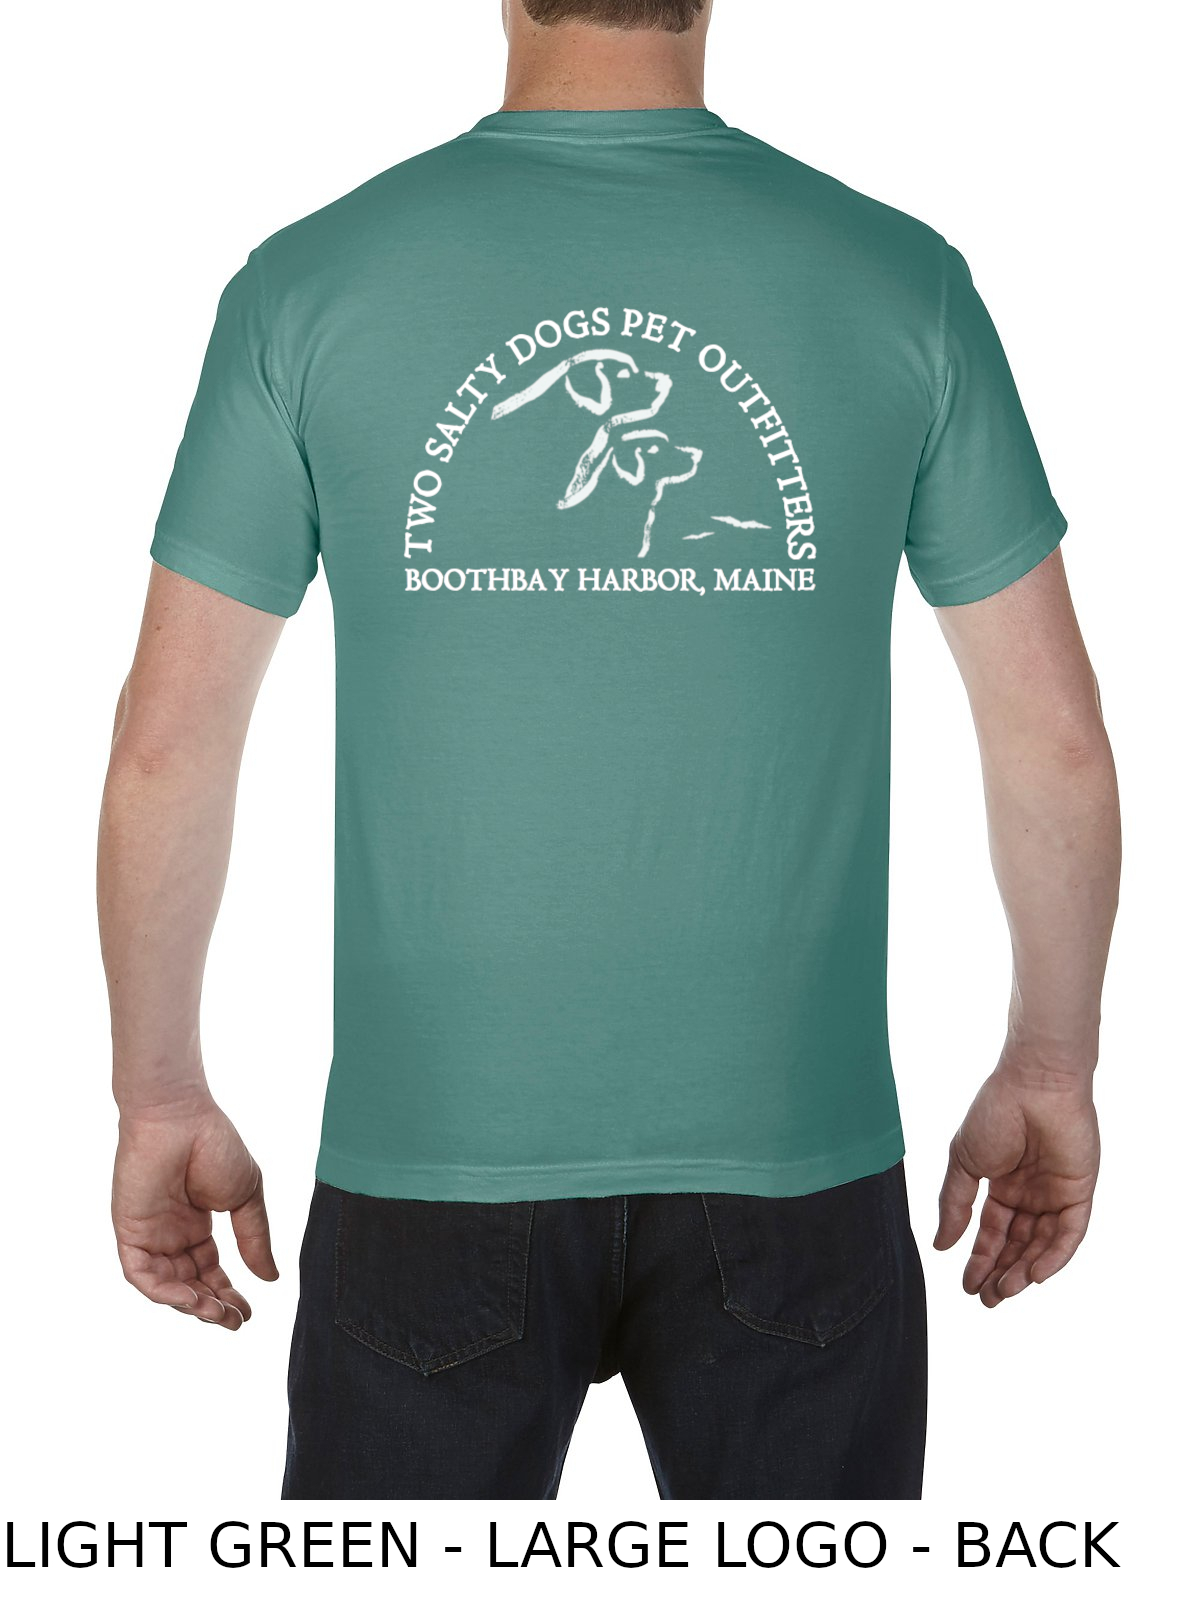 bbha-ss-t-shirt-no-pocket-light-green-back